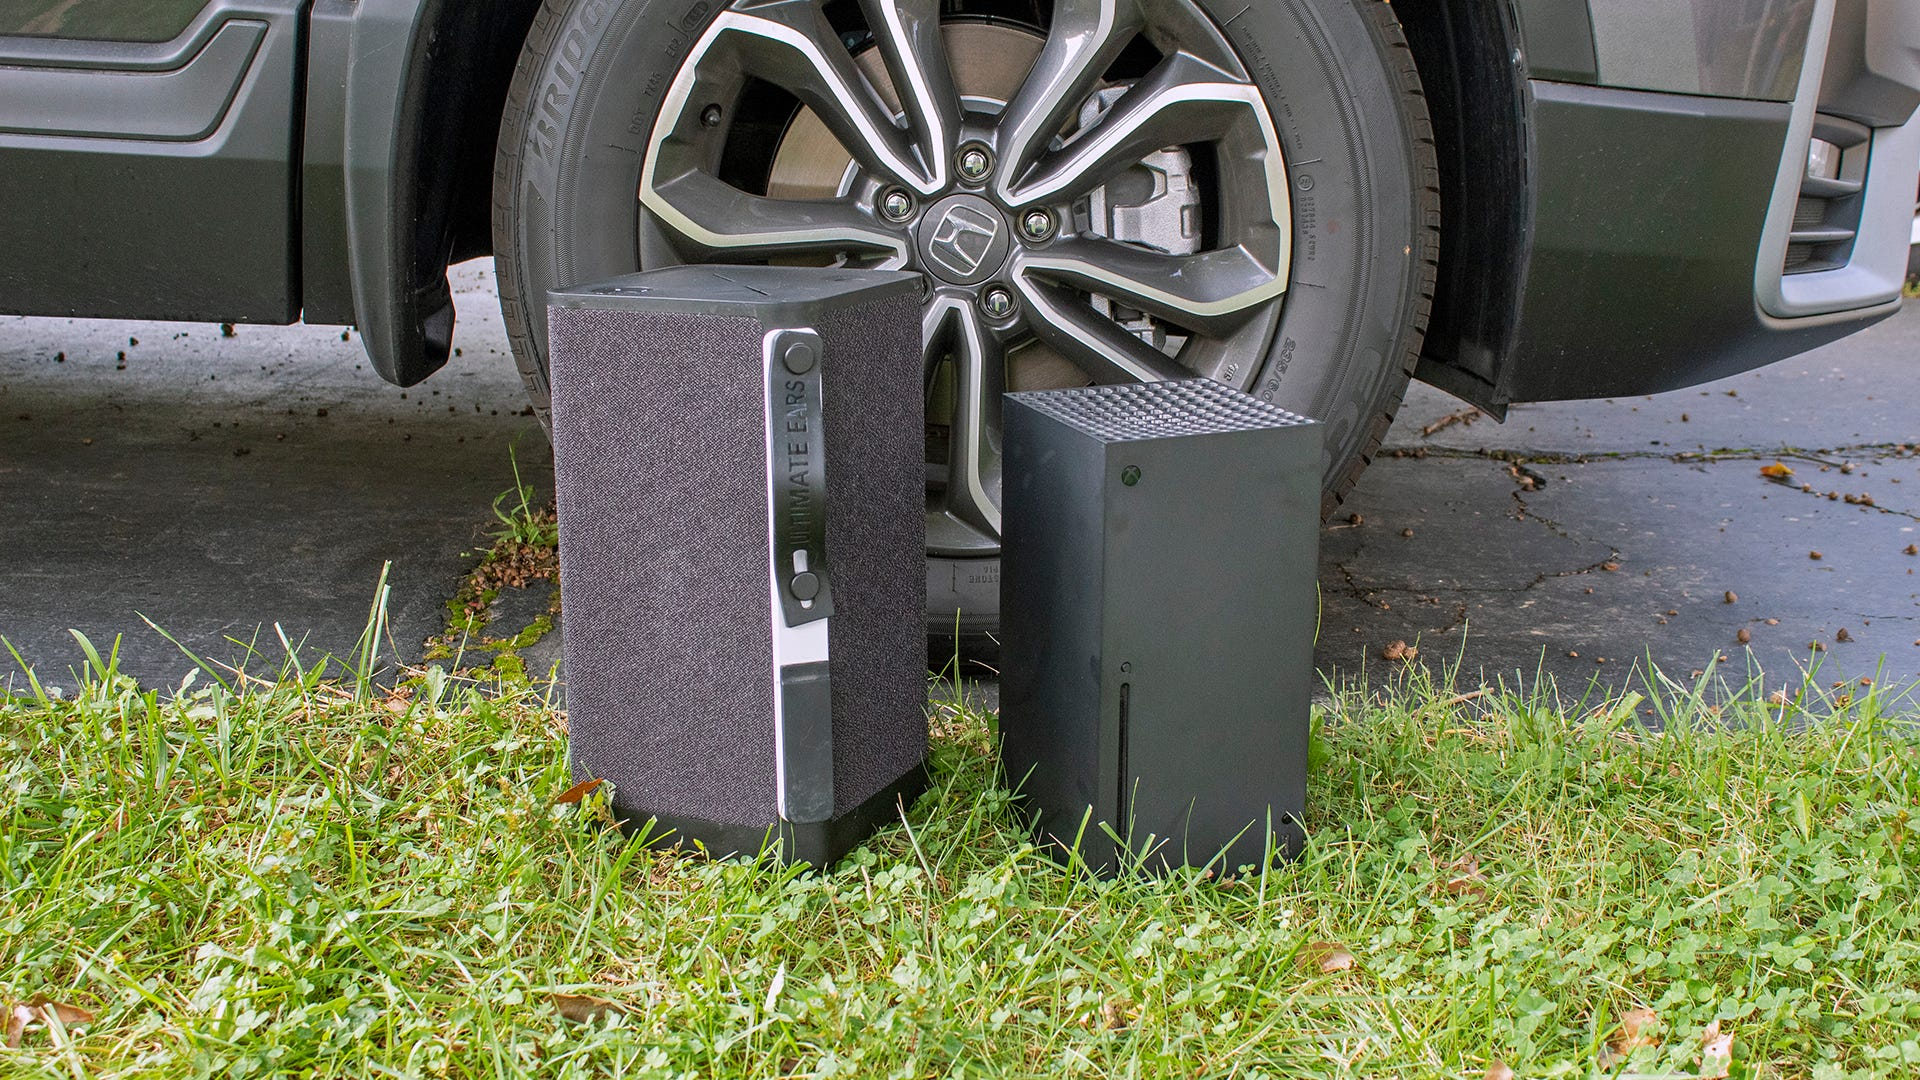 A large portable speaker next to a smaller Xbox Series X